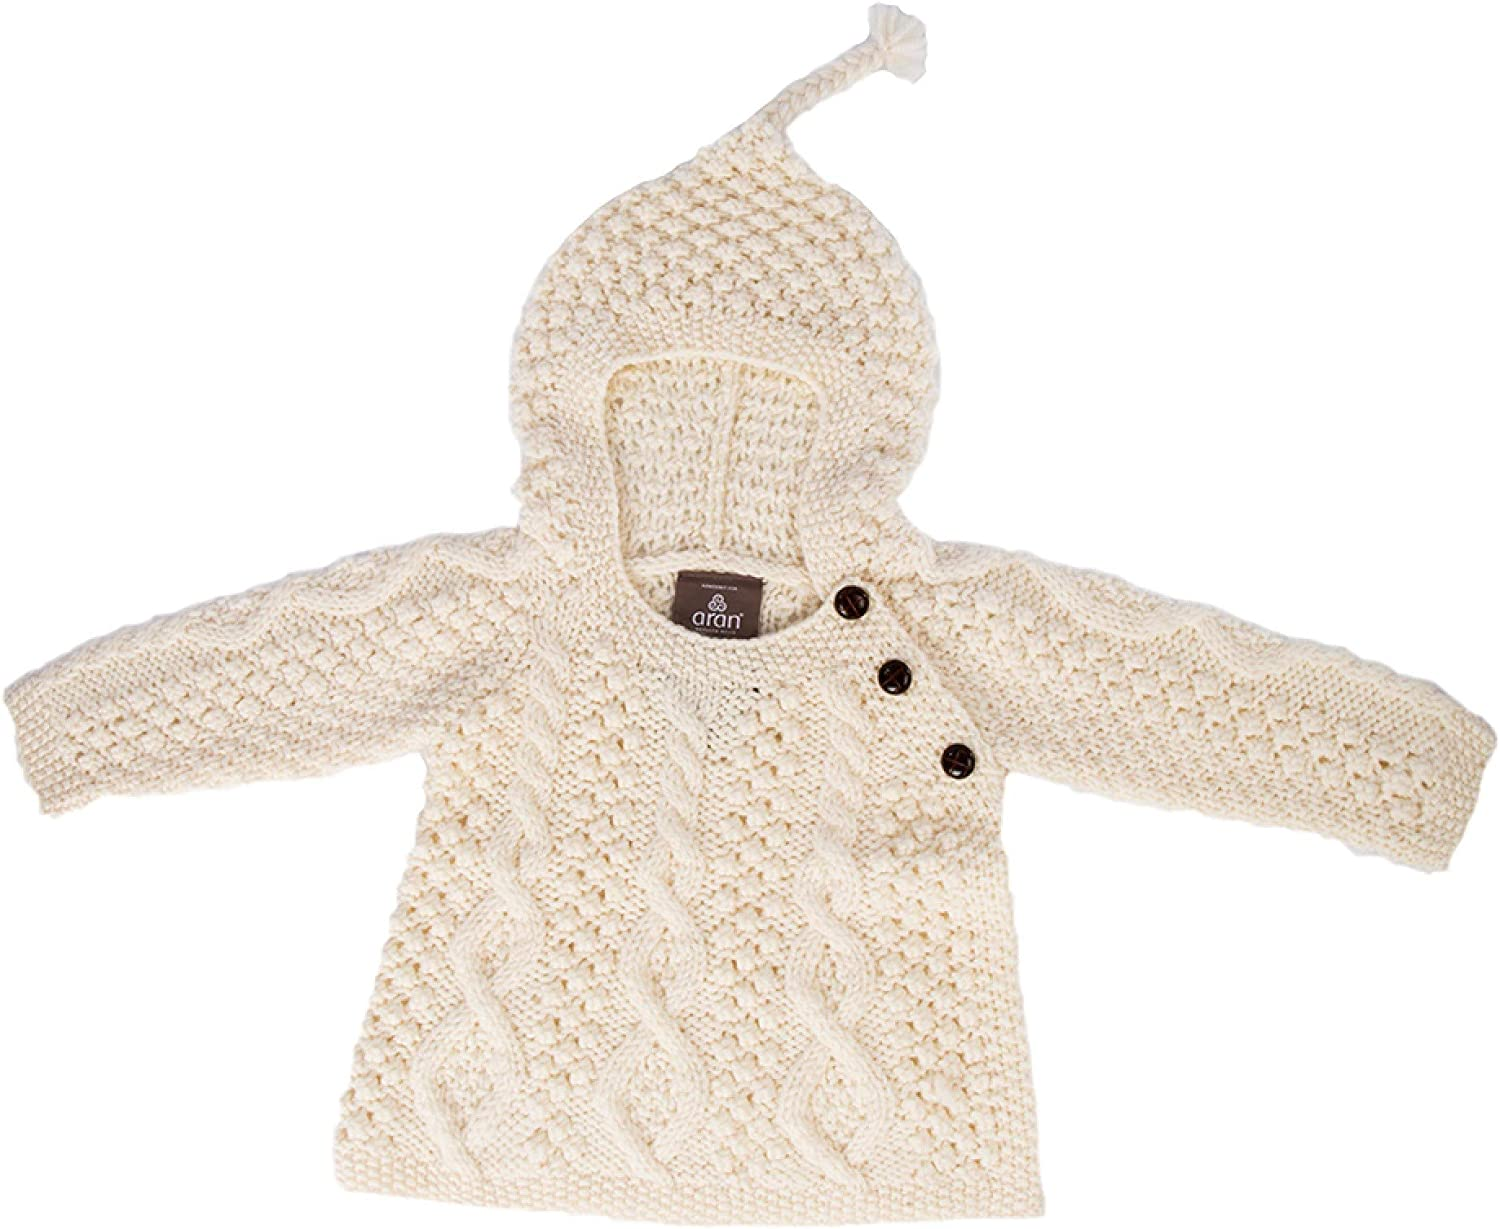 Carraig Donn 100% Merino Wool Baby Hoodie with Side Fastening Buttons Natural